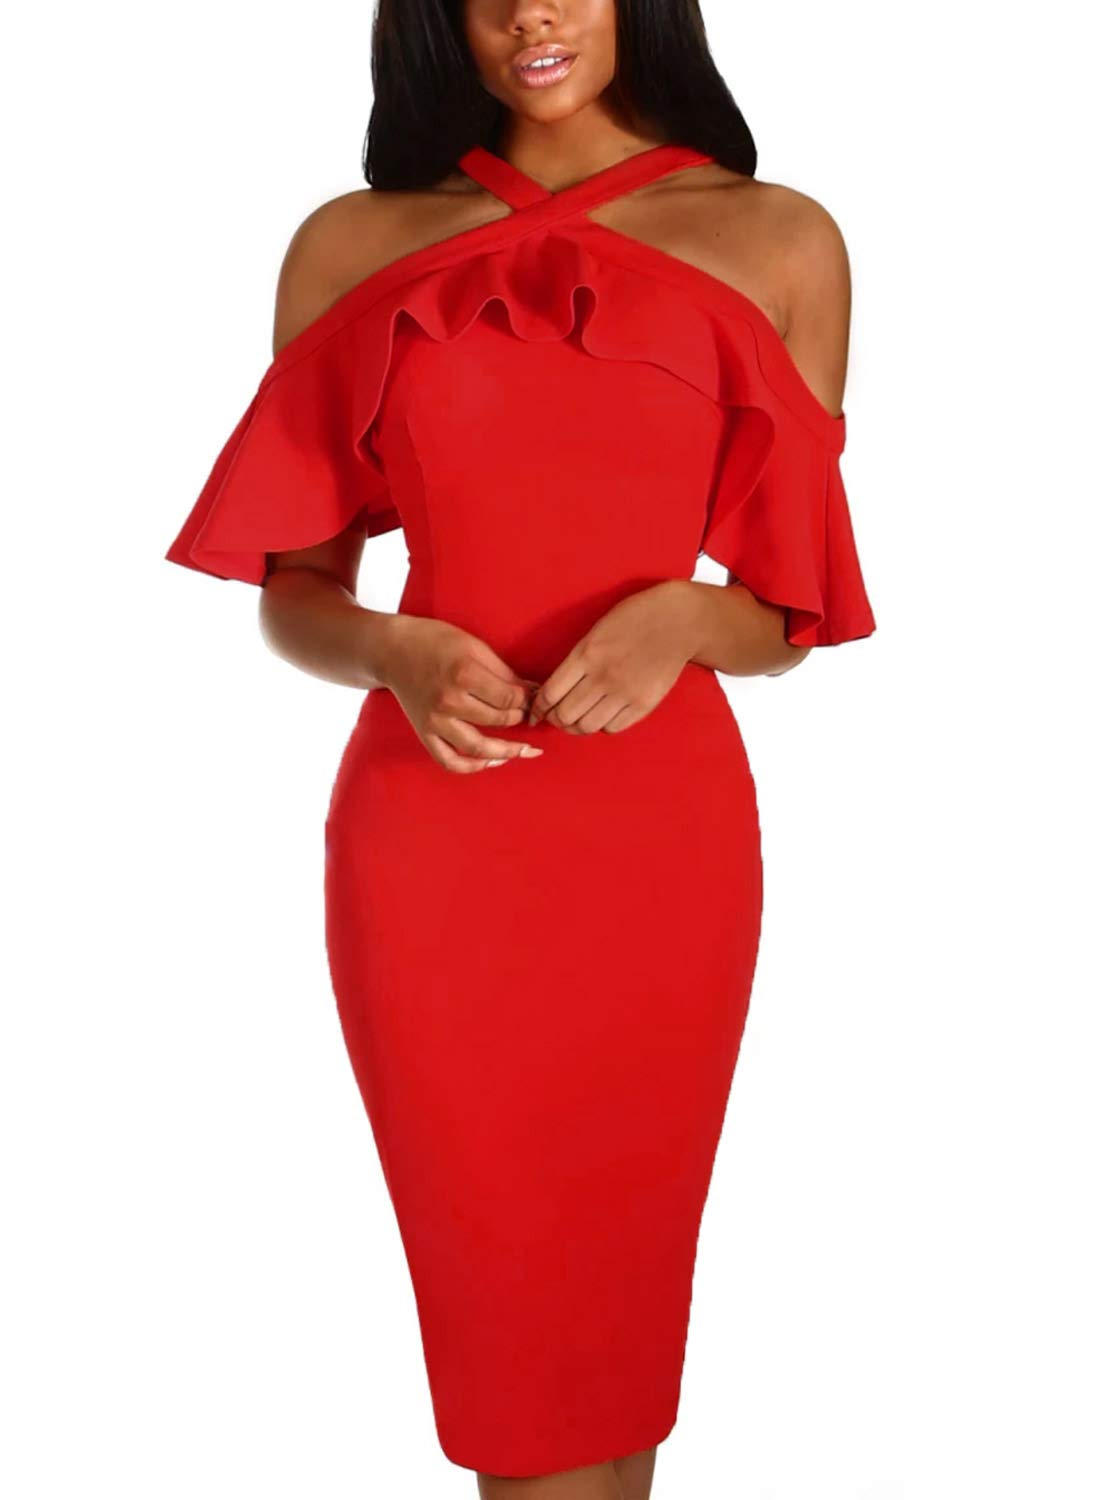 AlvaQ Womens Laides Sexy Ruffle Sleeve Frill Halter Criss Cross Cold Shoulder Party Cocktail Wedding Bodycon Midi Knee Length Dress Red Small